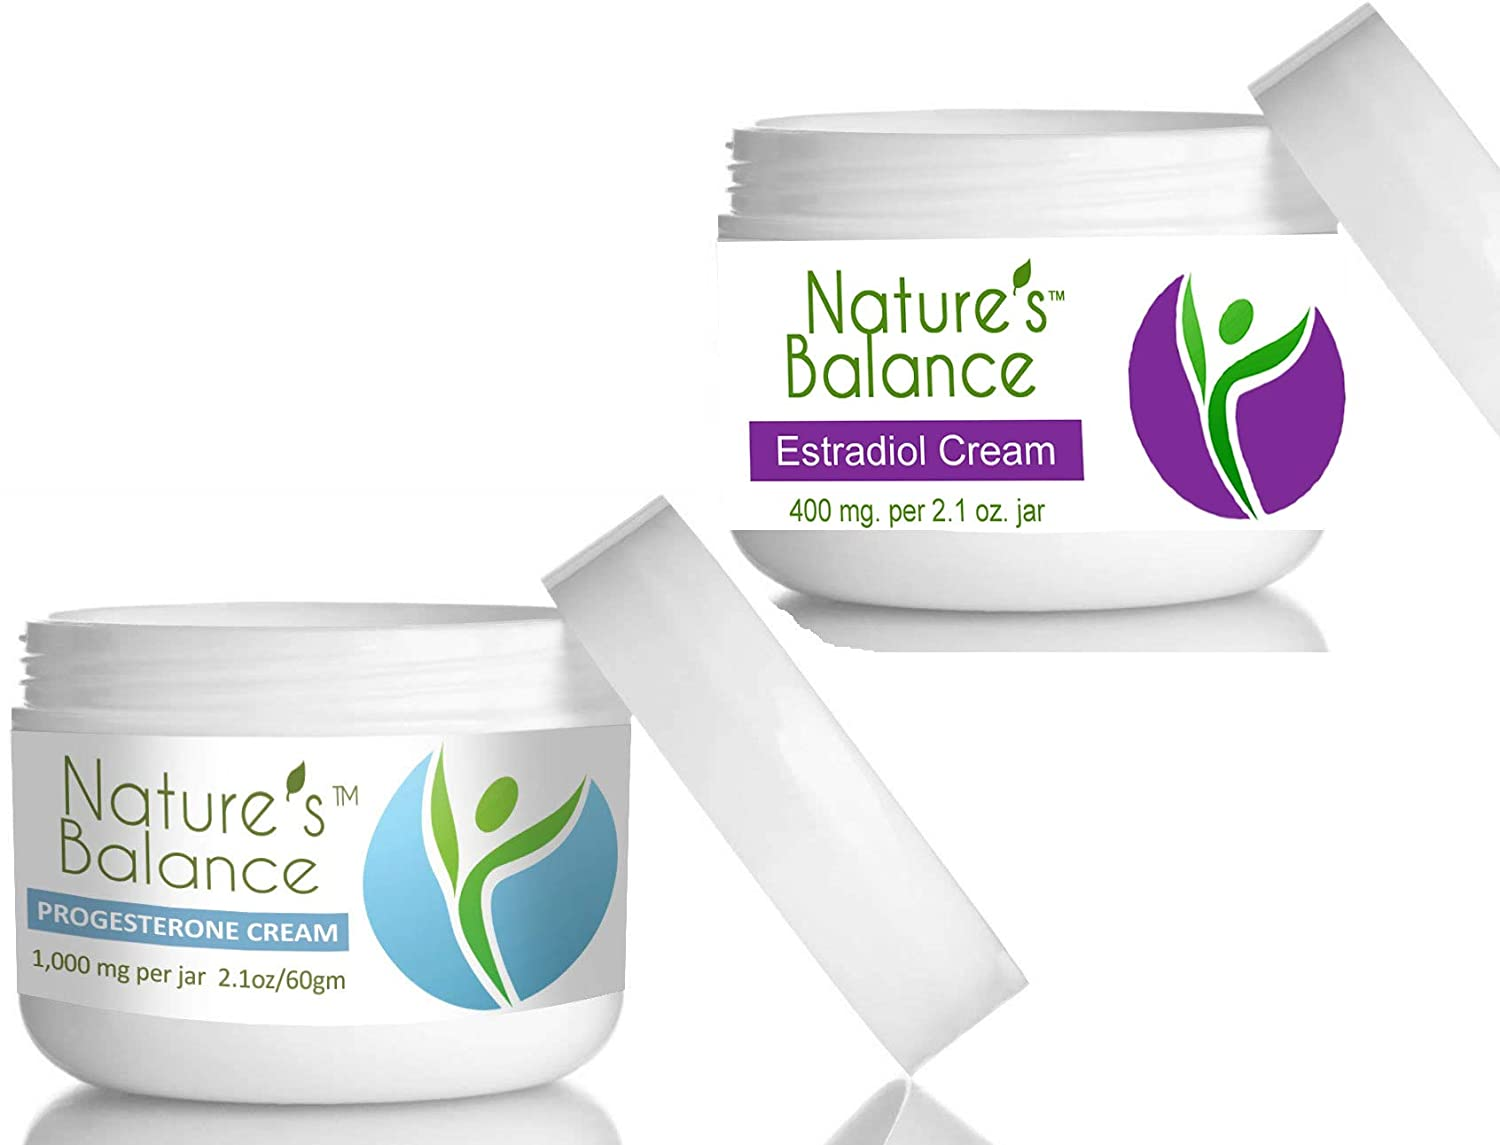 Bio-Identical Estradiol and Progesterone Cream  Fragrance Free  Free from  Toxic, Cancer Causing